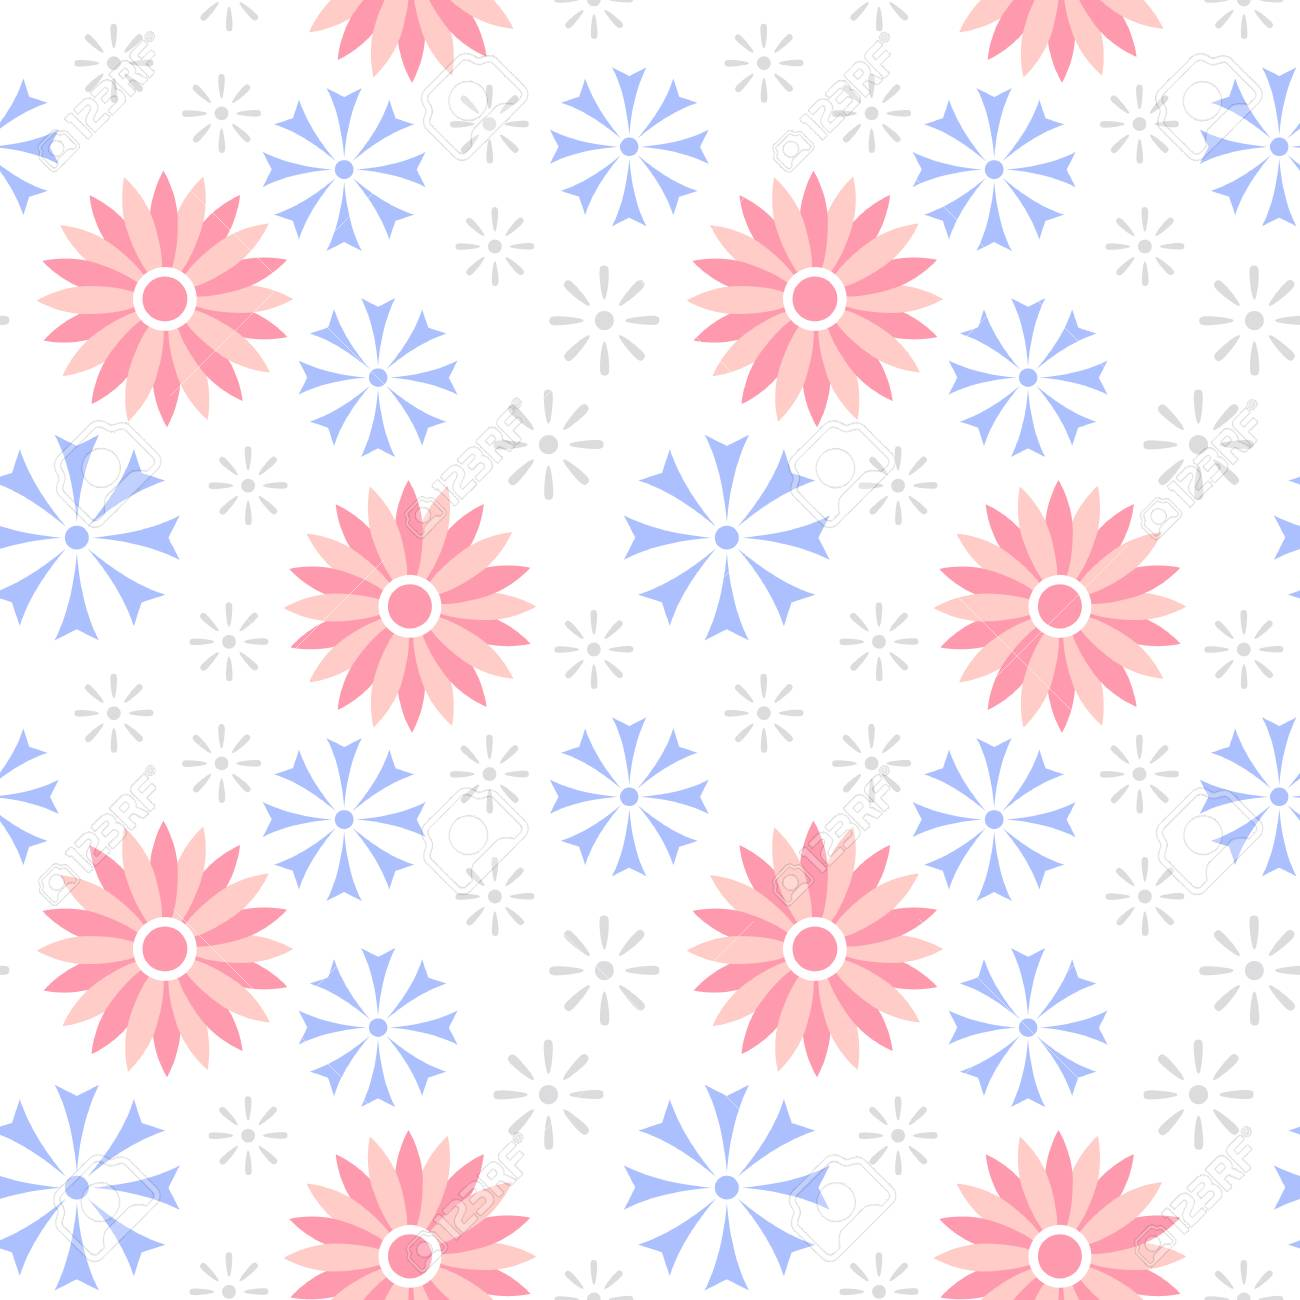 Spring Flower Seamless Pattern Cute Floral Backgrounds For Your